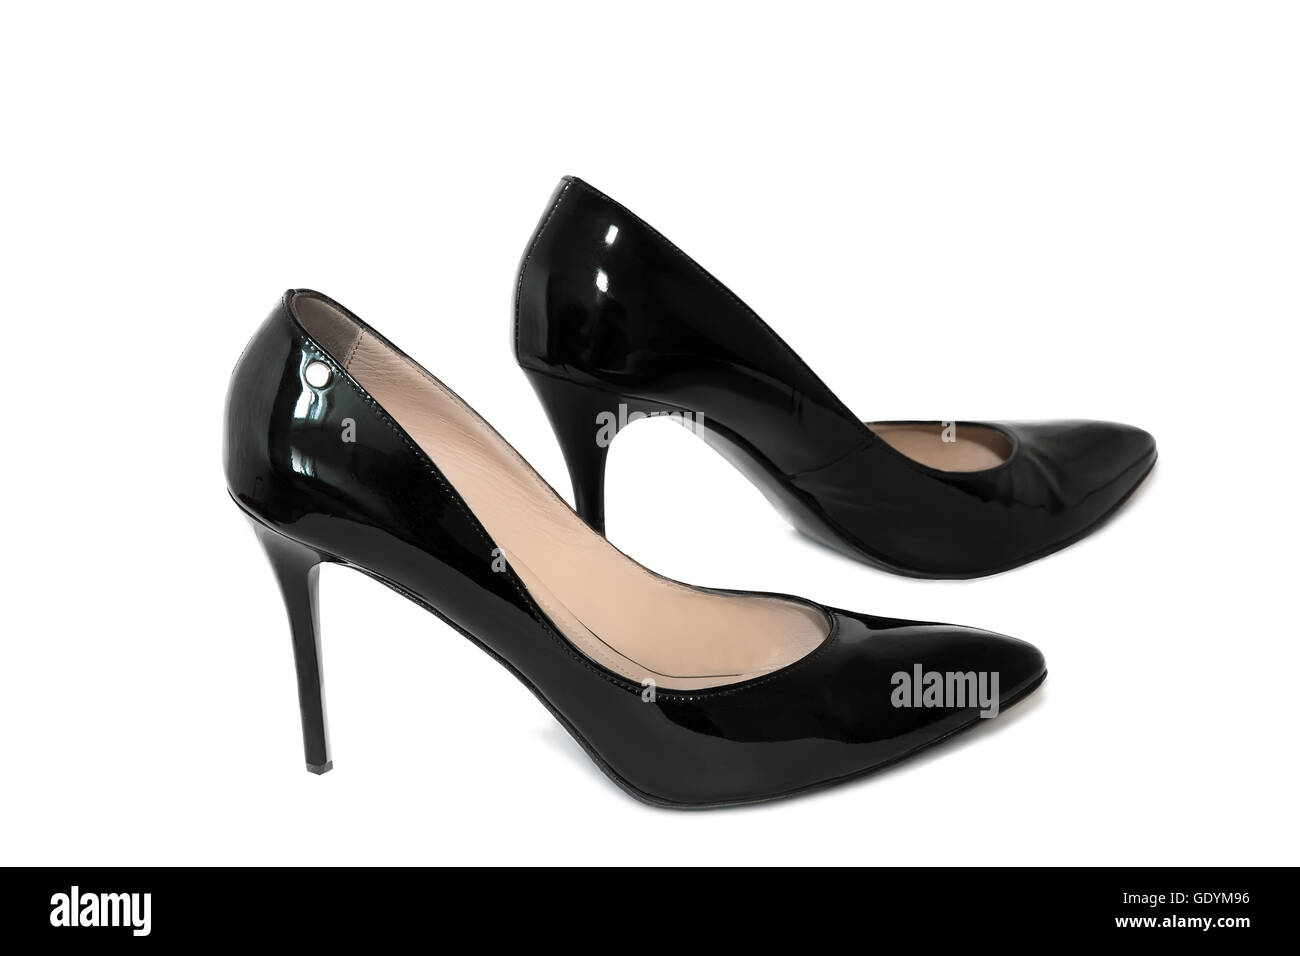 006db94c2a4e Beautiful elegant shoes for women black patent leather high heels.  Presented on a white background